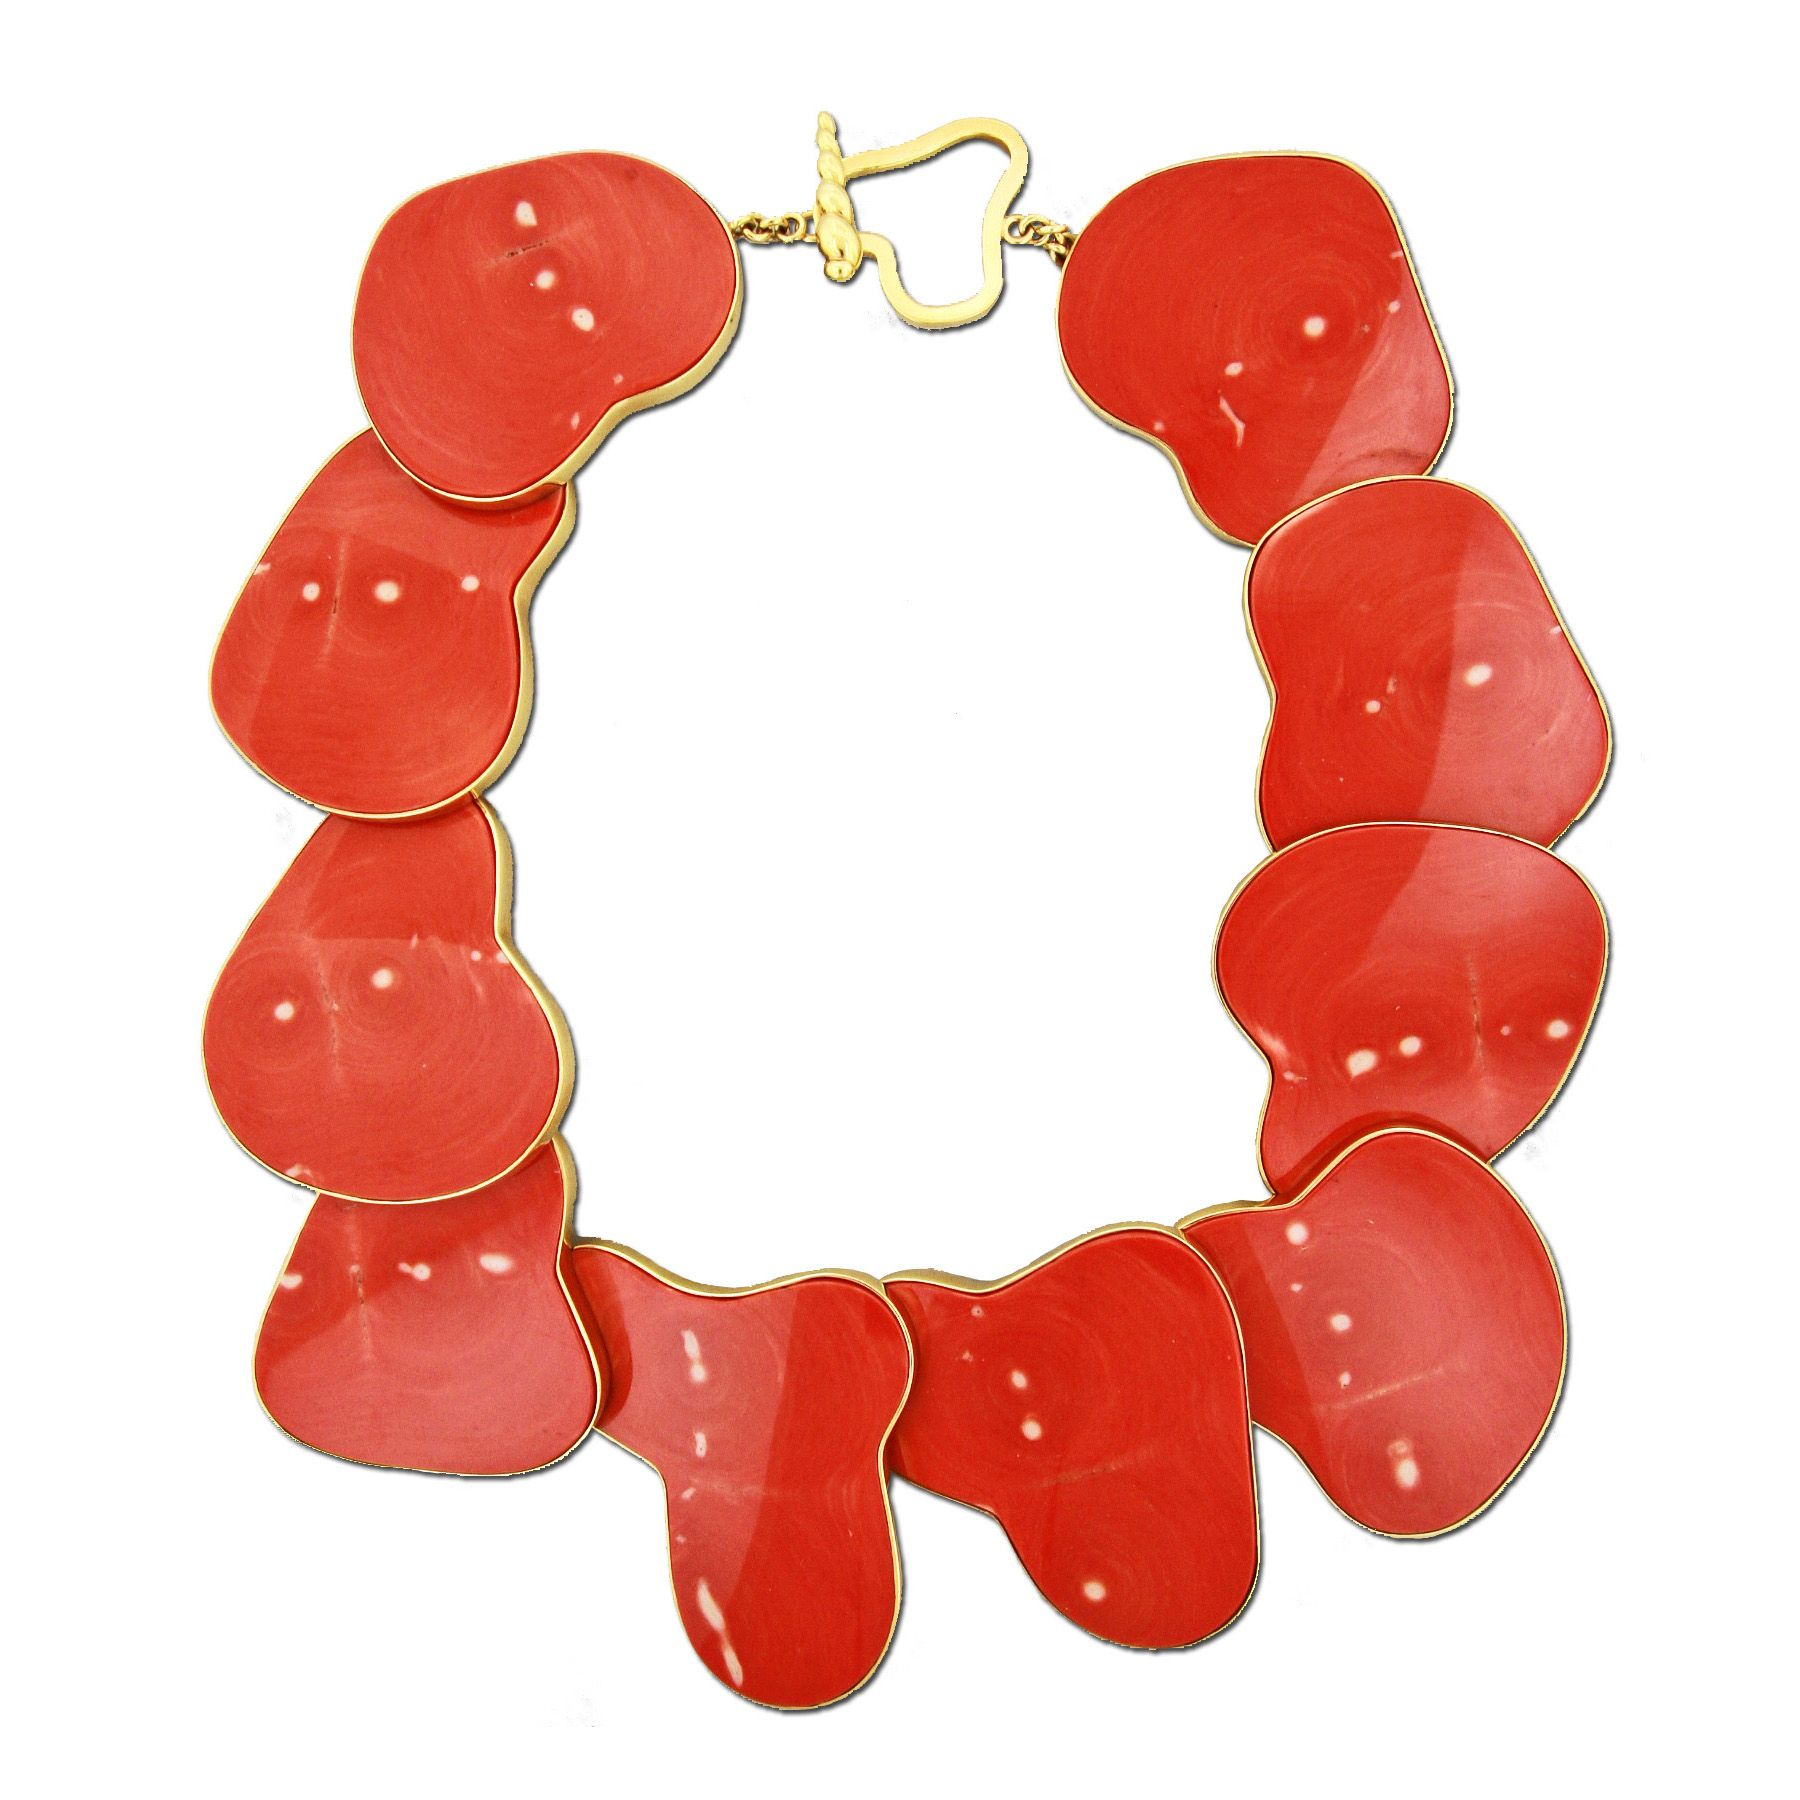 Coral And Gold Necklace By Taffin Simon Teakle Coral Joyeria